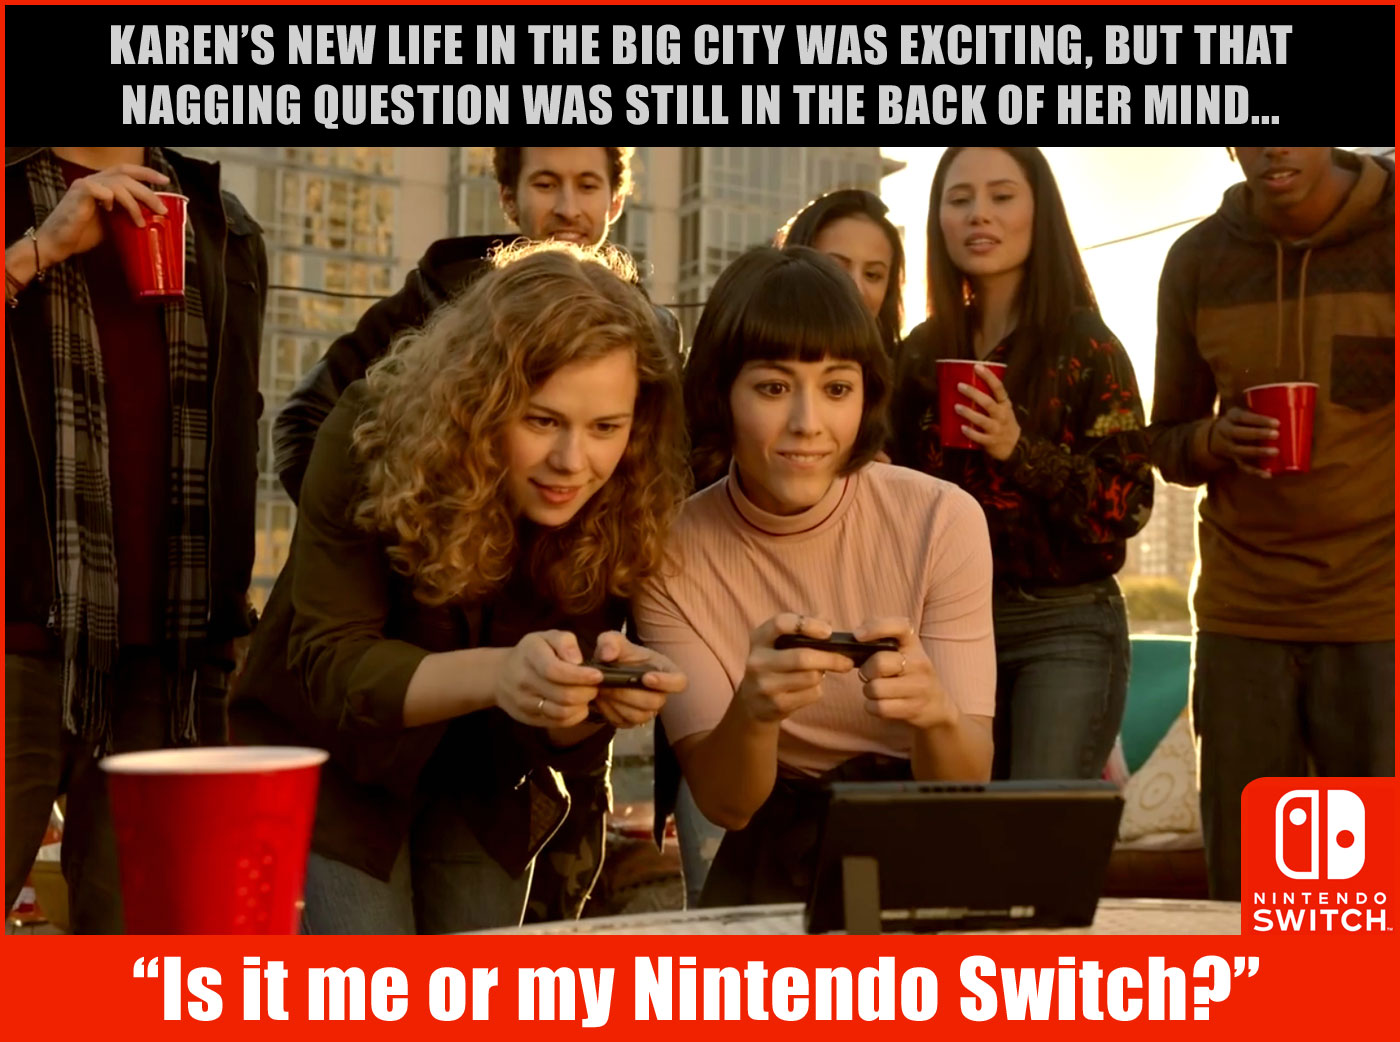 Karen from Nintendo's Switch reveal trailer